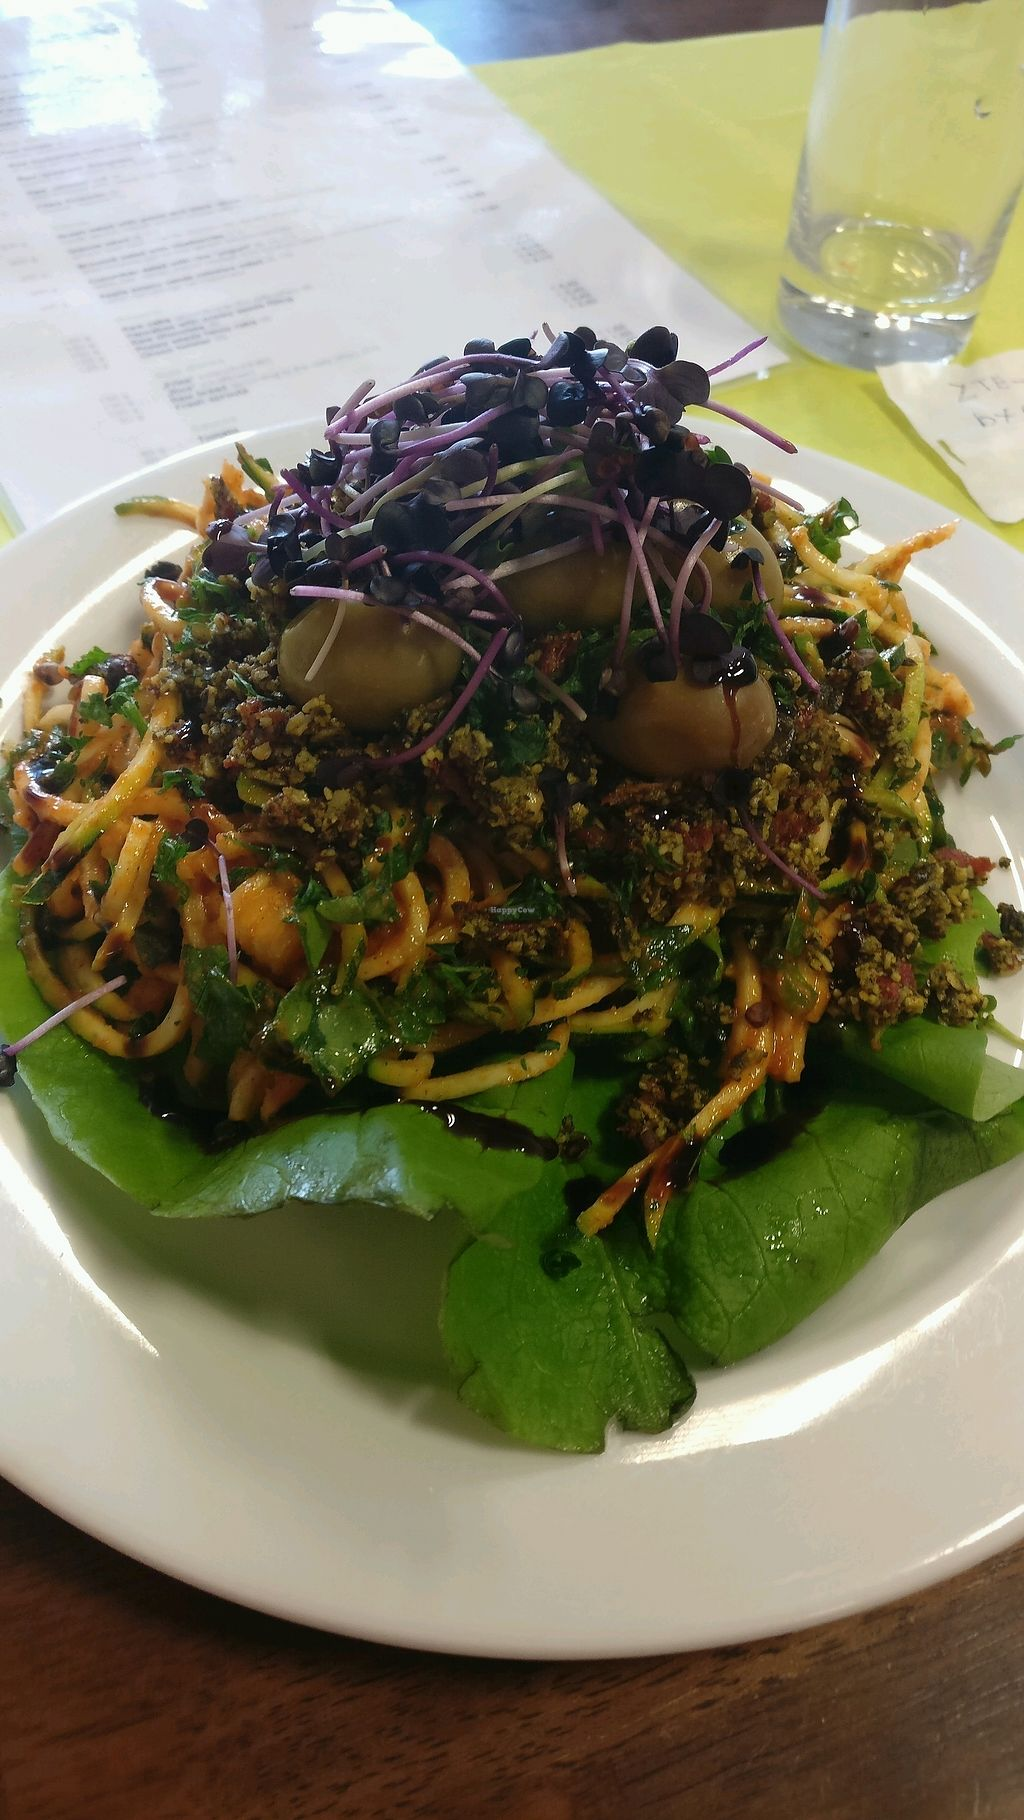 """Photo of Bemba  by <a href=""""/members/profile/Pachamamma"""">Pachamamma</a> <br/>raw spaghetti 6.2 euro <br/> March 24, 2018  - <a href='/contact/abuse/image/30861/375407'>Report</a>"""